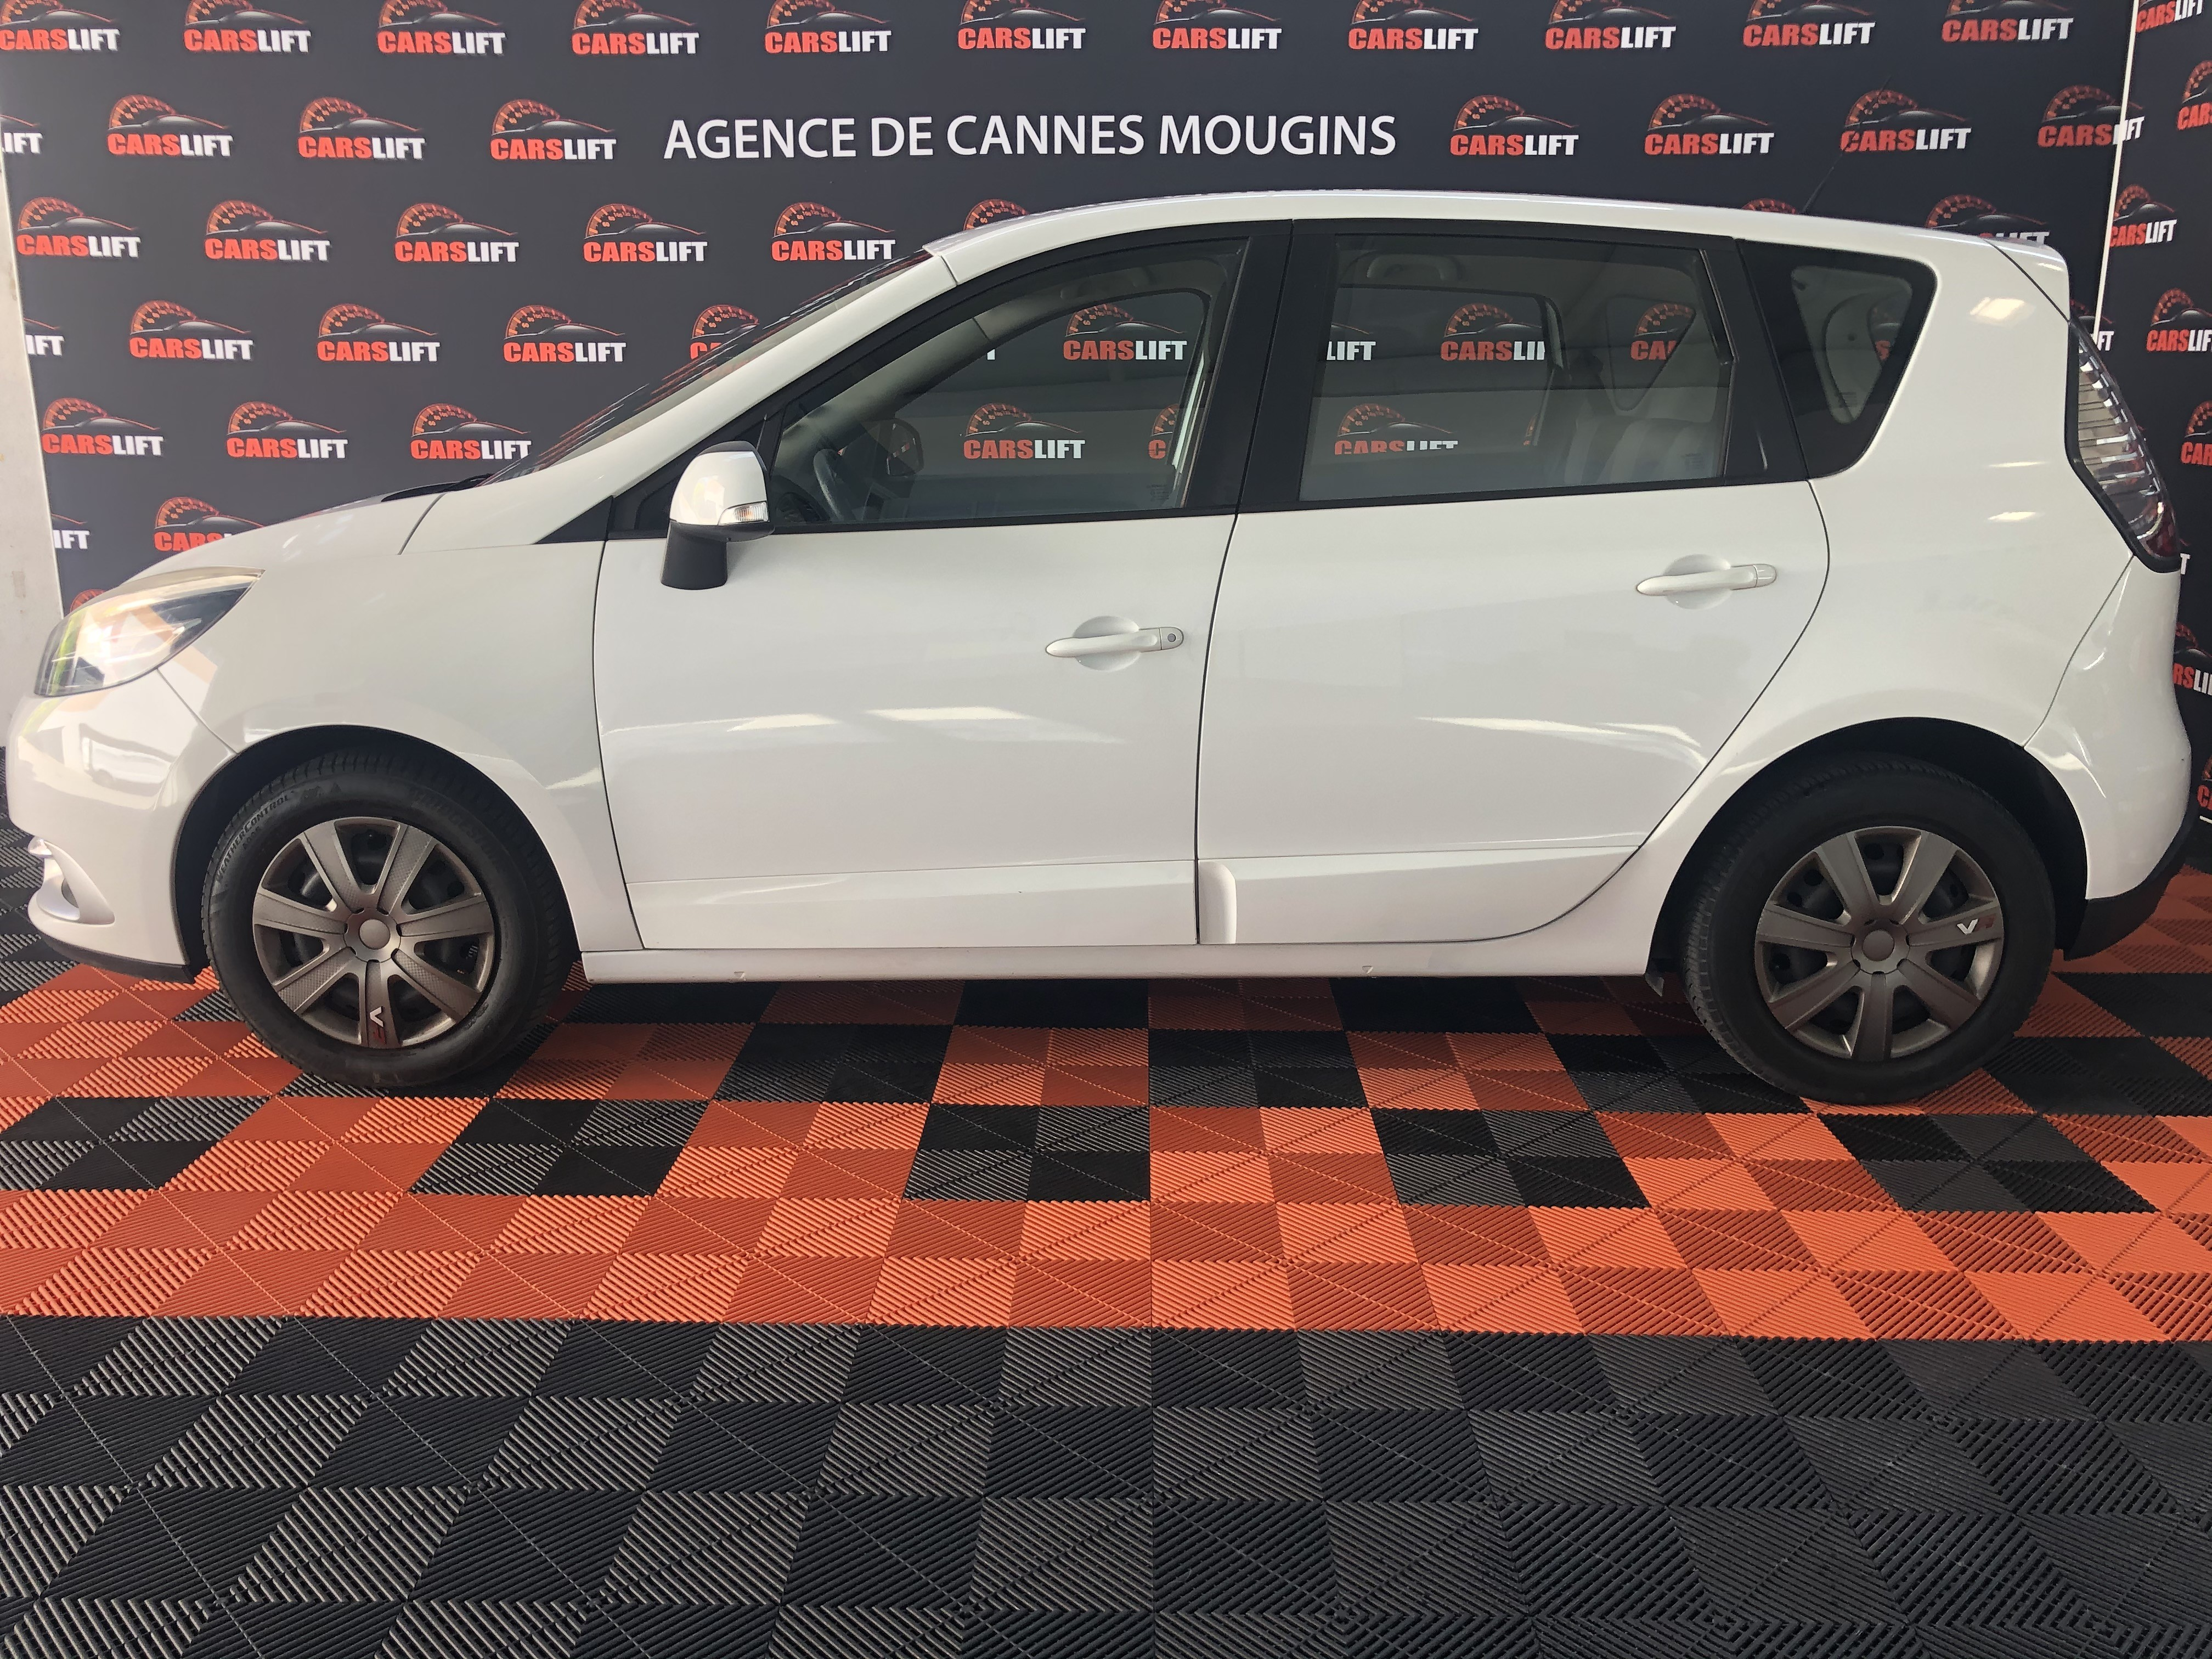 photo_Renault Scenic 3 phase 2 1.5 dci FAP 110 ch S&S Stop Eco 2 LIFE,